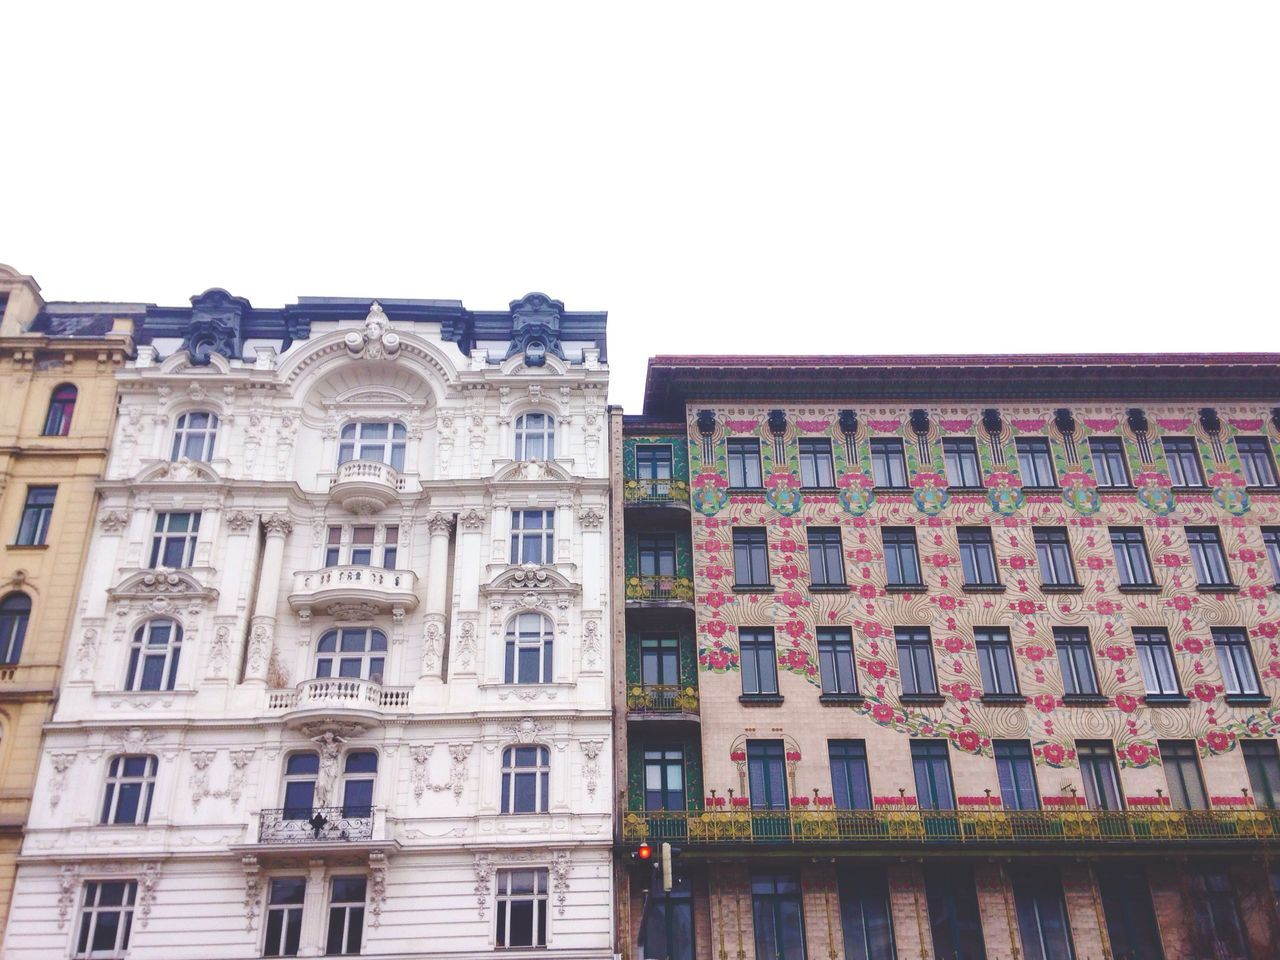 Vienna why you so pretty. Building Exterior Architecture Window City Built Structure Façade Low Angle View Clear Sky Outdoors No People Day Building Feature Sky Design Art